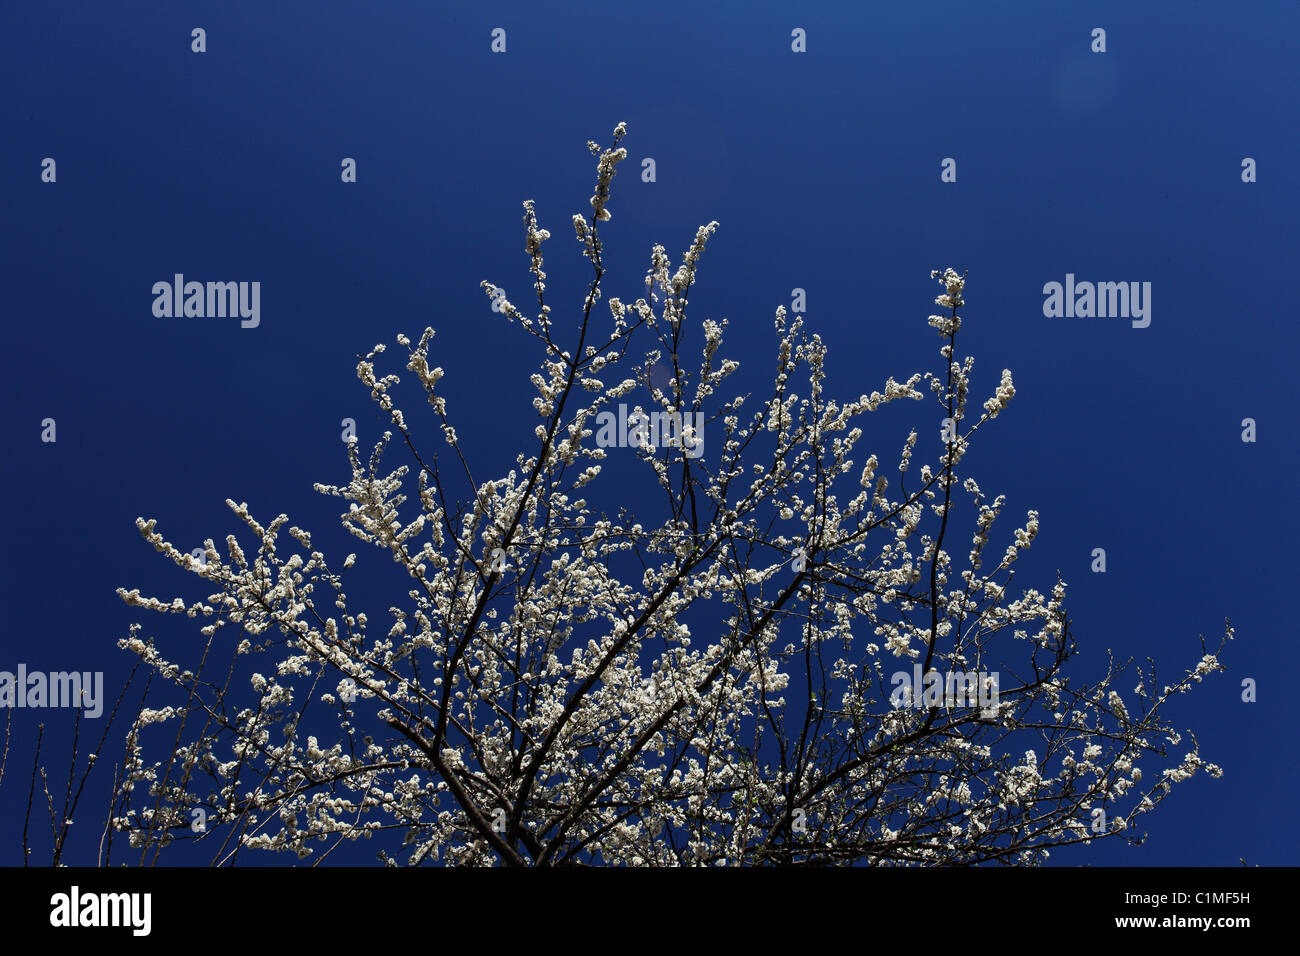 Himalayan flowers and fruit trees Nepal Himalaya - Stock Image